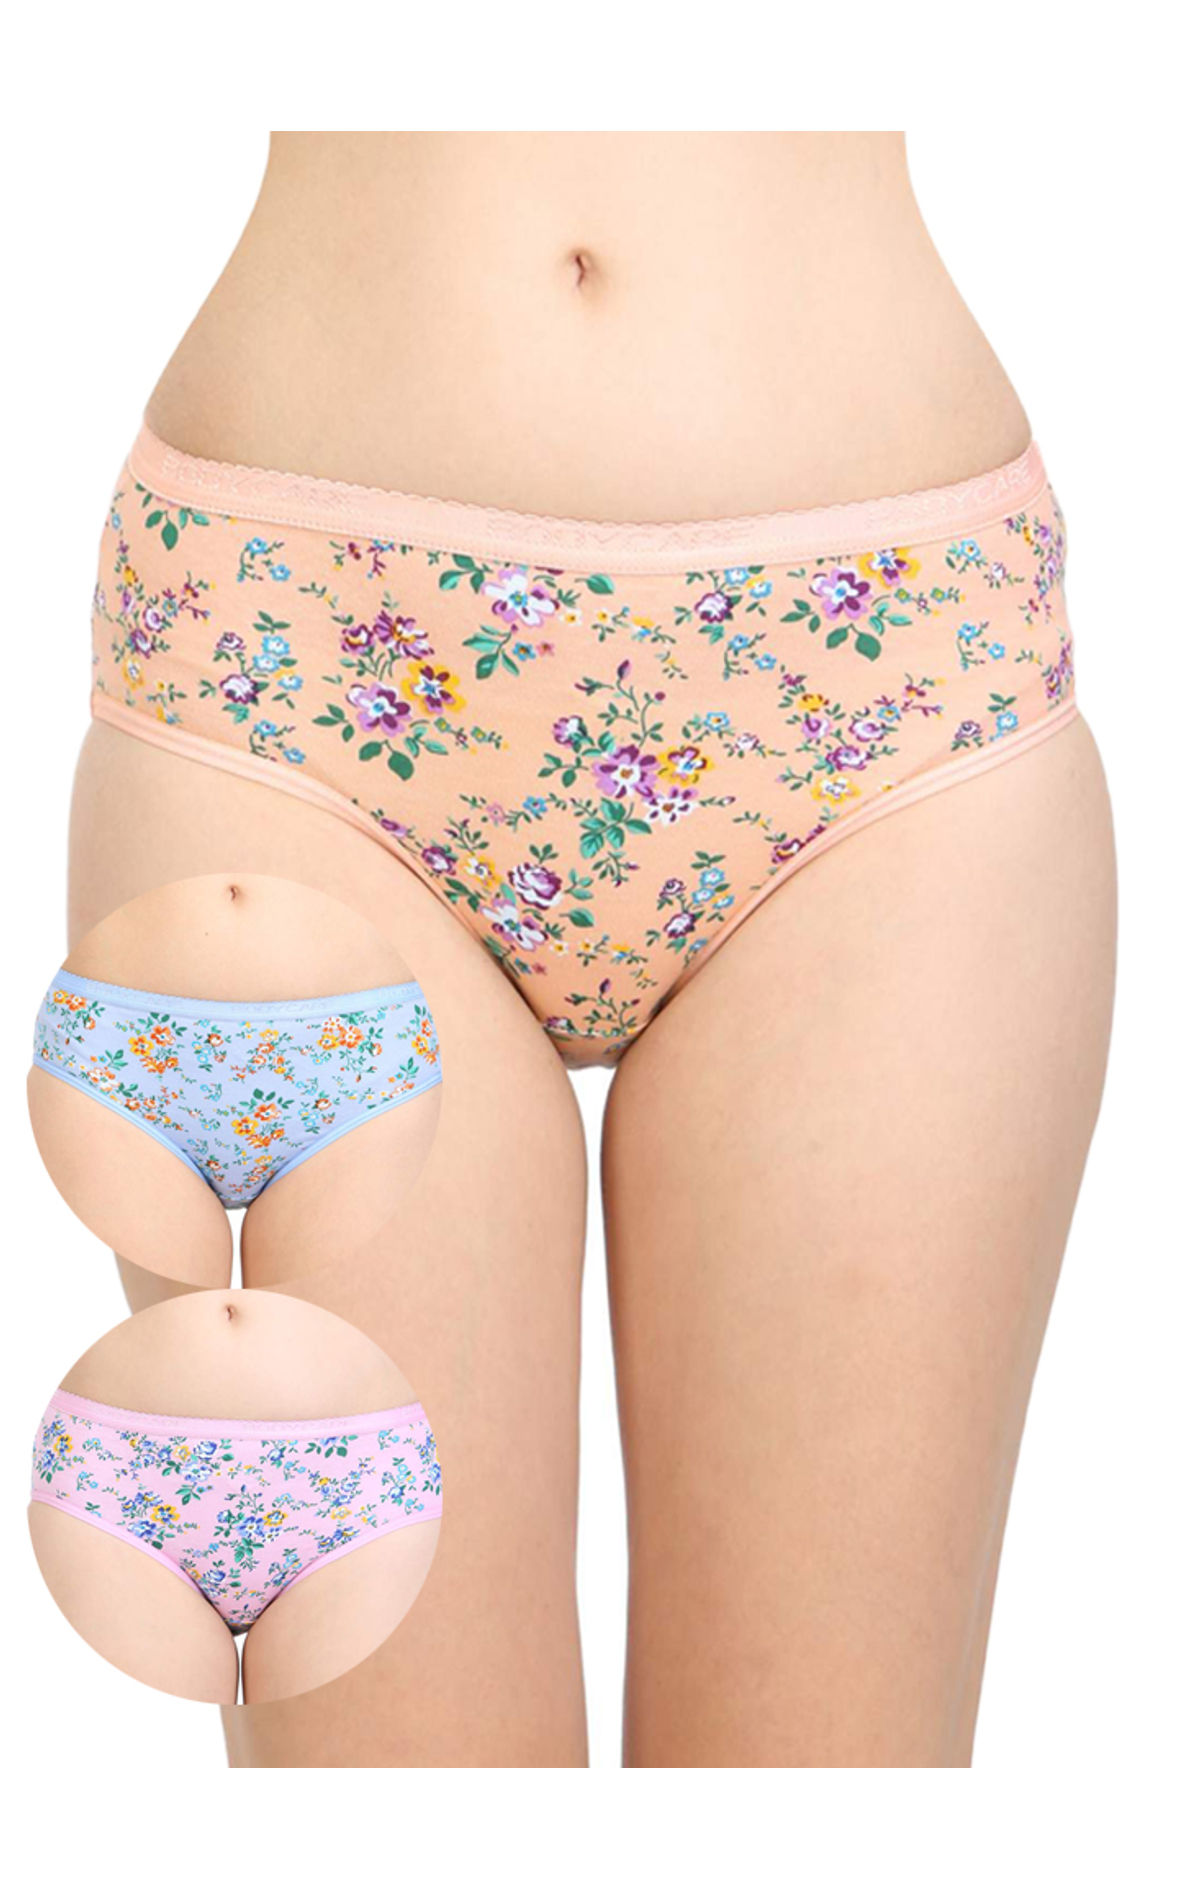 384dab20d97a ... Pack of 3 Bodycare Cotton Printed Premium Panties in Assorted colors